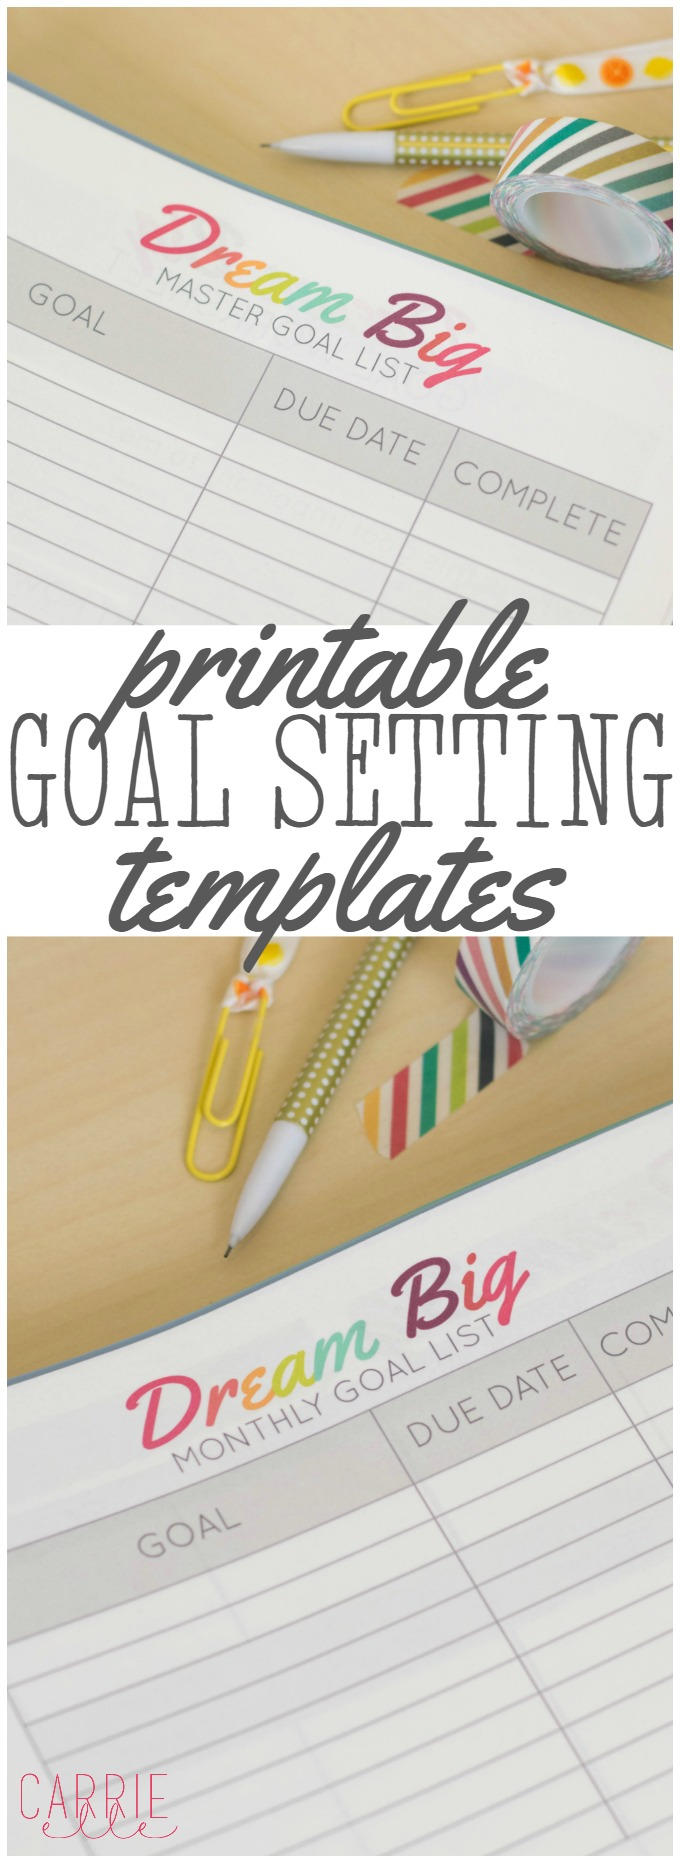 objective setting template - printable goal setting template carrie elle